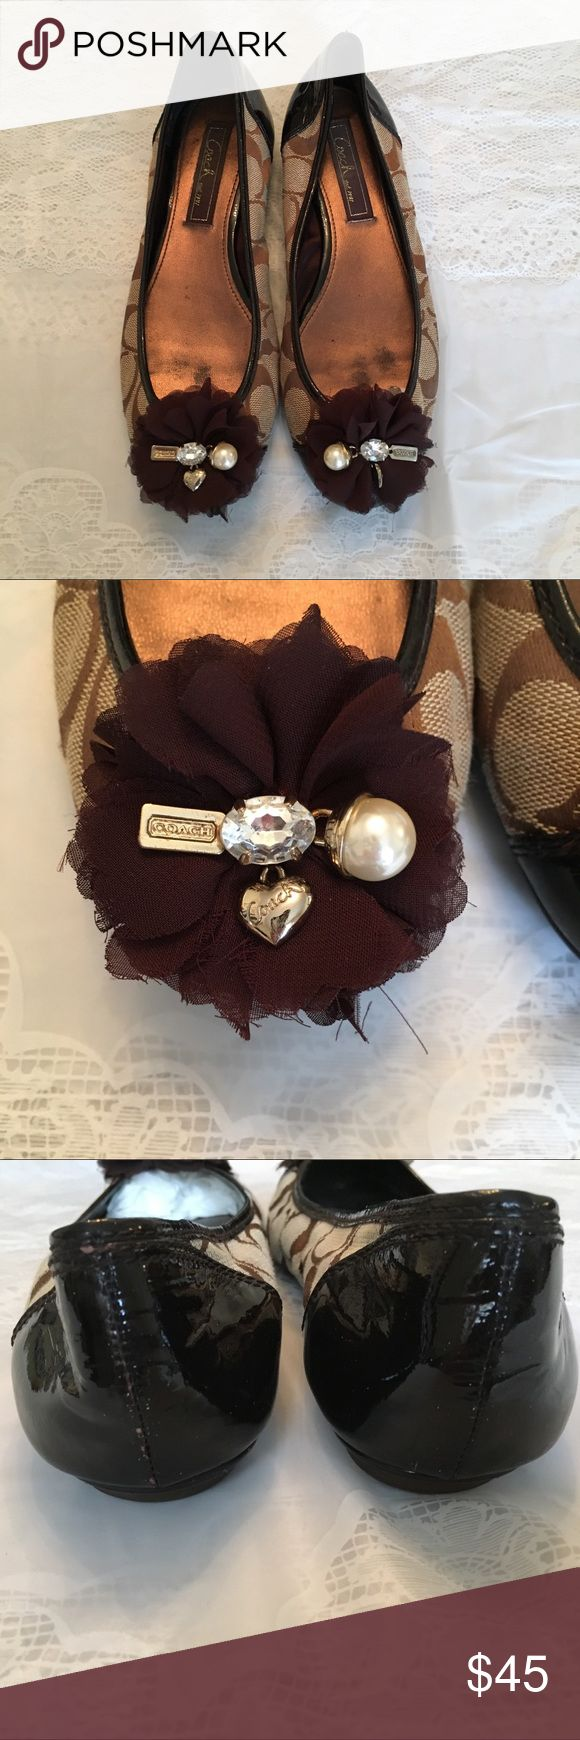 ✨🔅COACH flats🔅✨ Authentic Coach Footwear ✨Flats✨ Size: 7 Condition: Great, worn 3-4 times (no stains and no pulling of fabric, in pic there are a few little chips of the patent on the heel. Reasonable offers accepted, thanks for looking💋 Coach Shoes Flats & Loafers